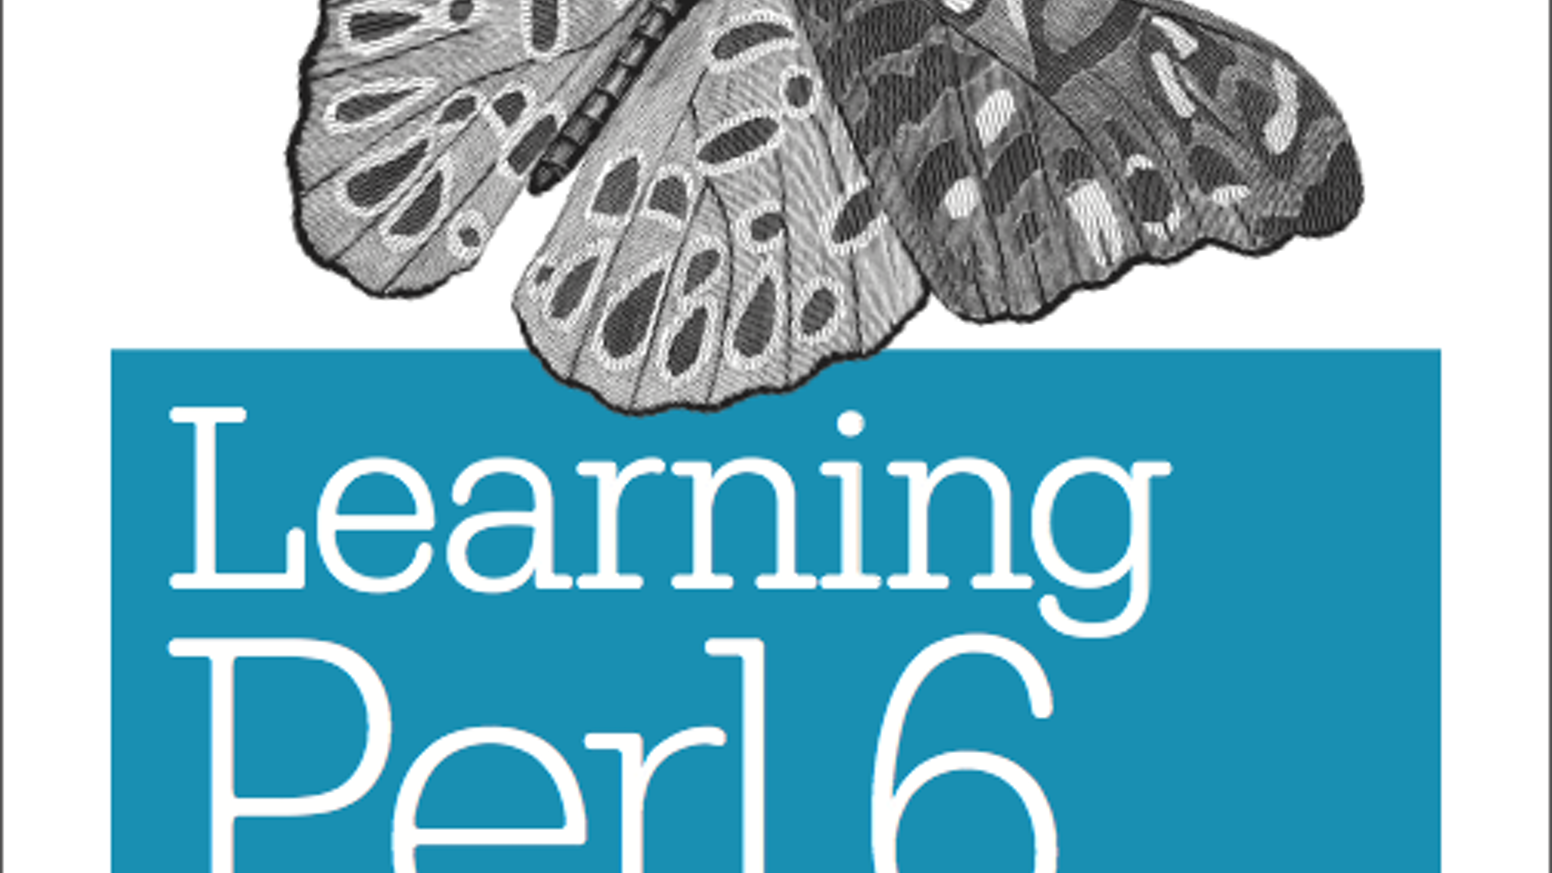 Learning Perl 6, the Nutshell Book from O'Reilly Media by brian d